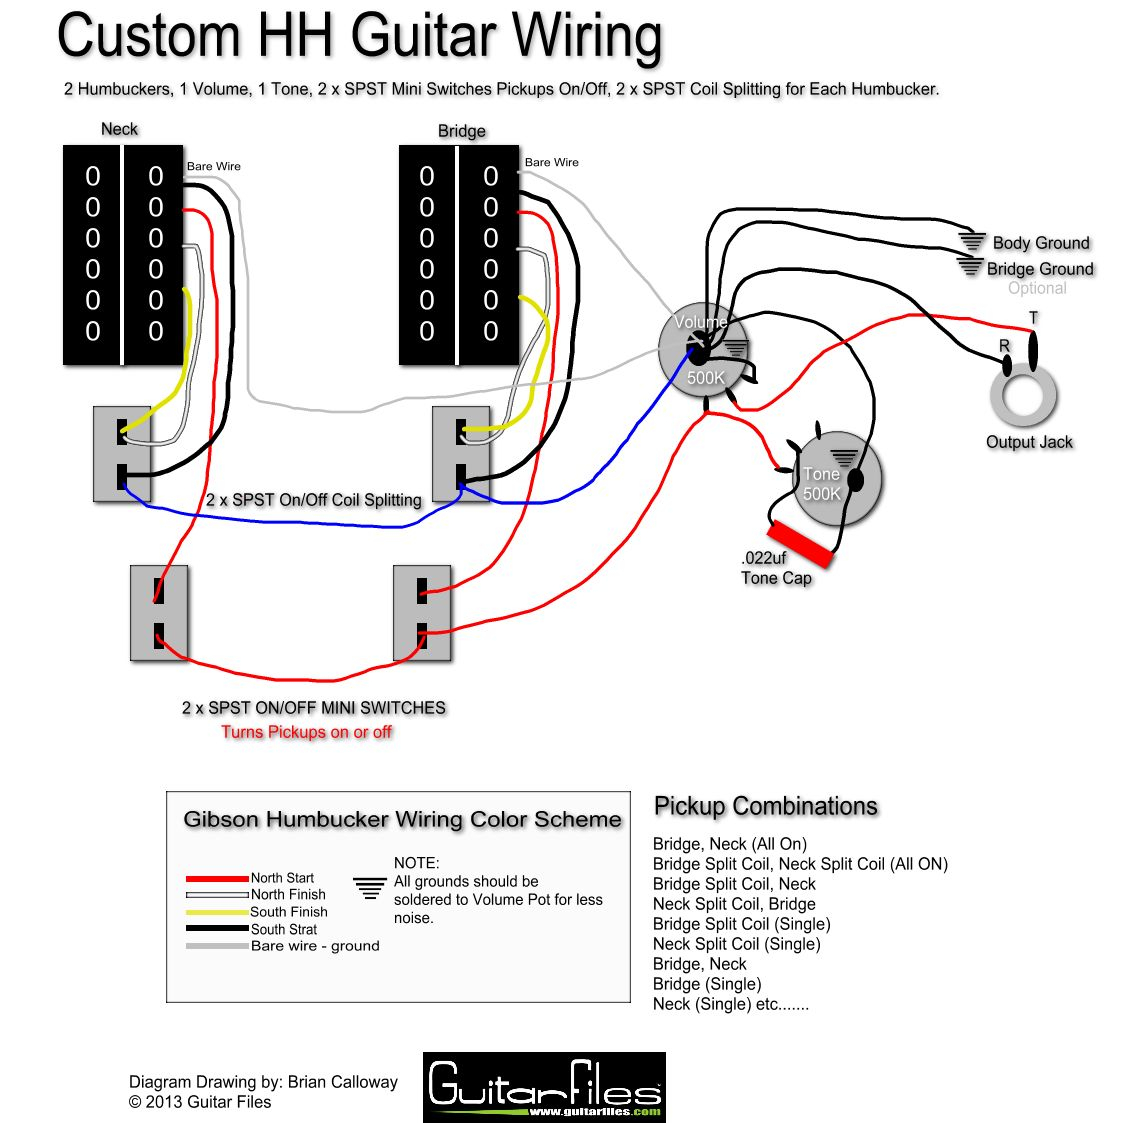 P90 Wiring Diagram Guitar